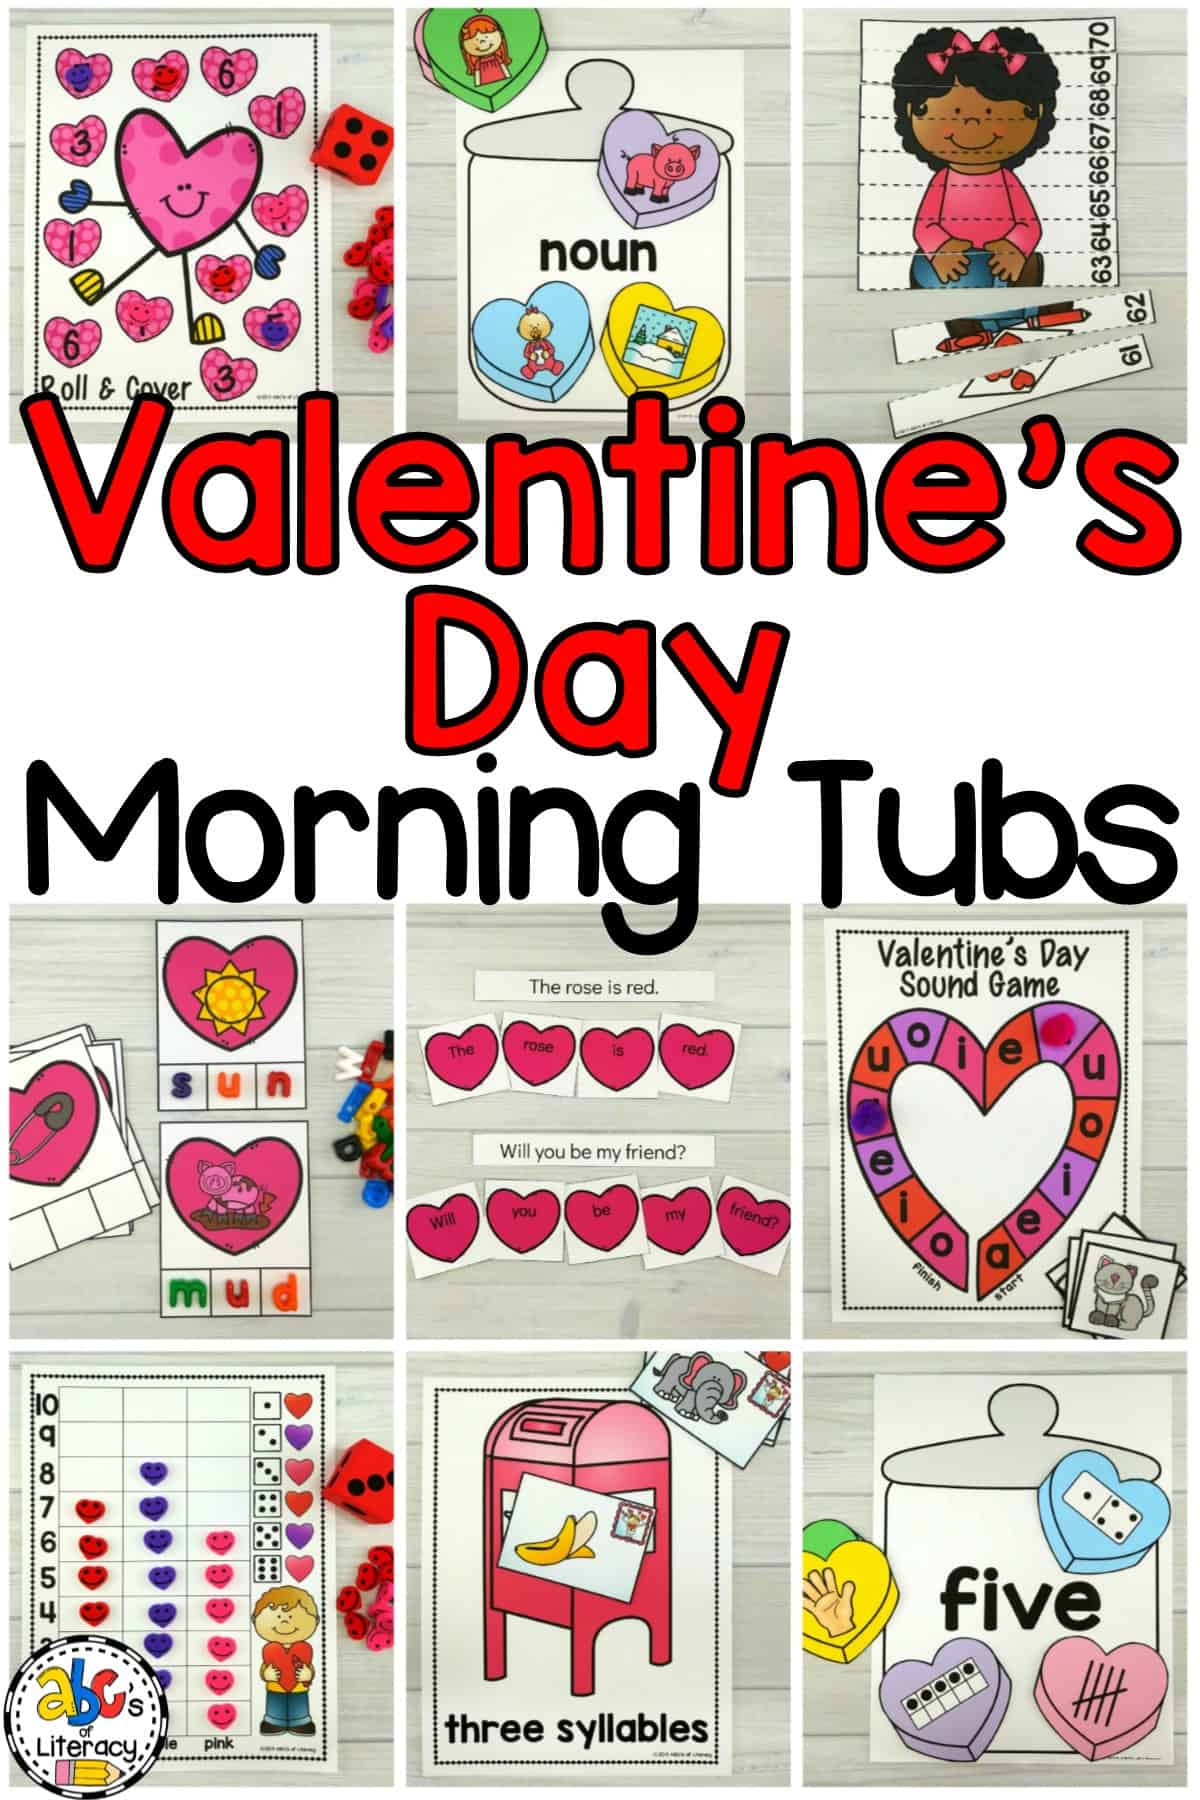 Valentine's Day Morning Tubs, Morning Tubs, Valentine's Day Activities, Valentine's Day Classroom Activities, February Morning Tubs, February Literacy Centers, February Math Centers, Valentine's Day Literacy Centers, Valentine's Day Math Centers